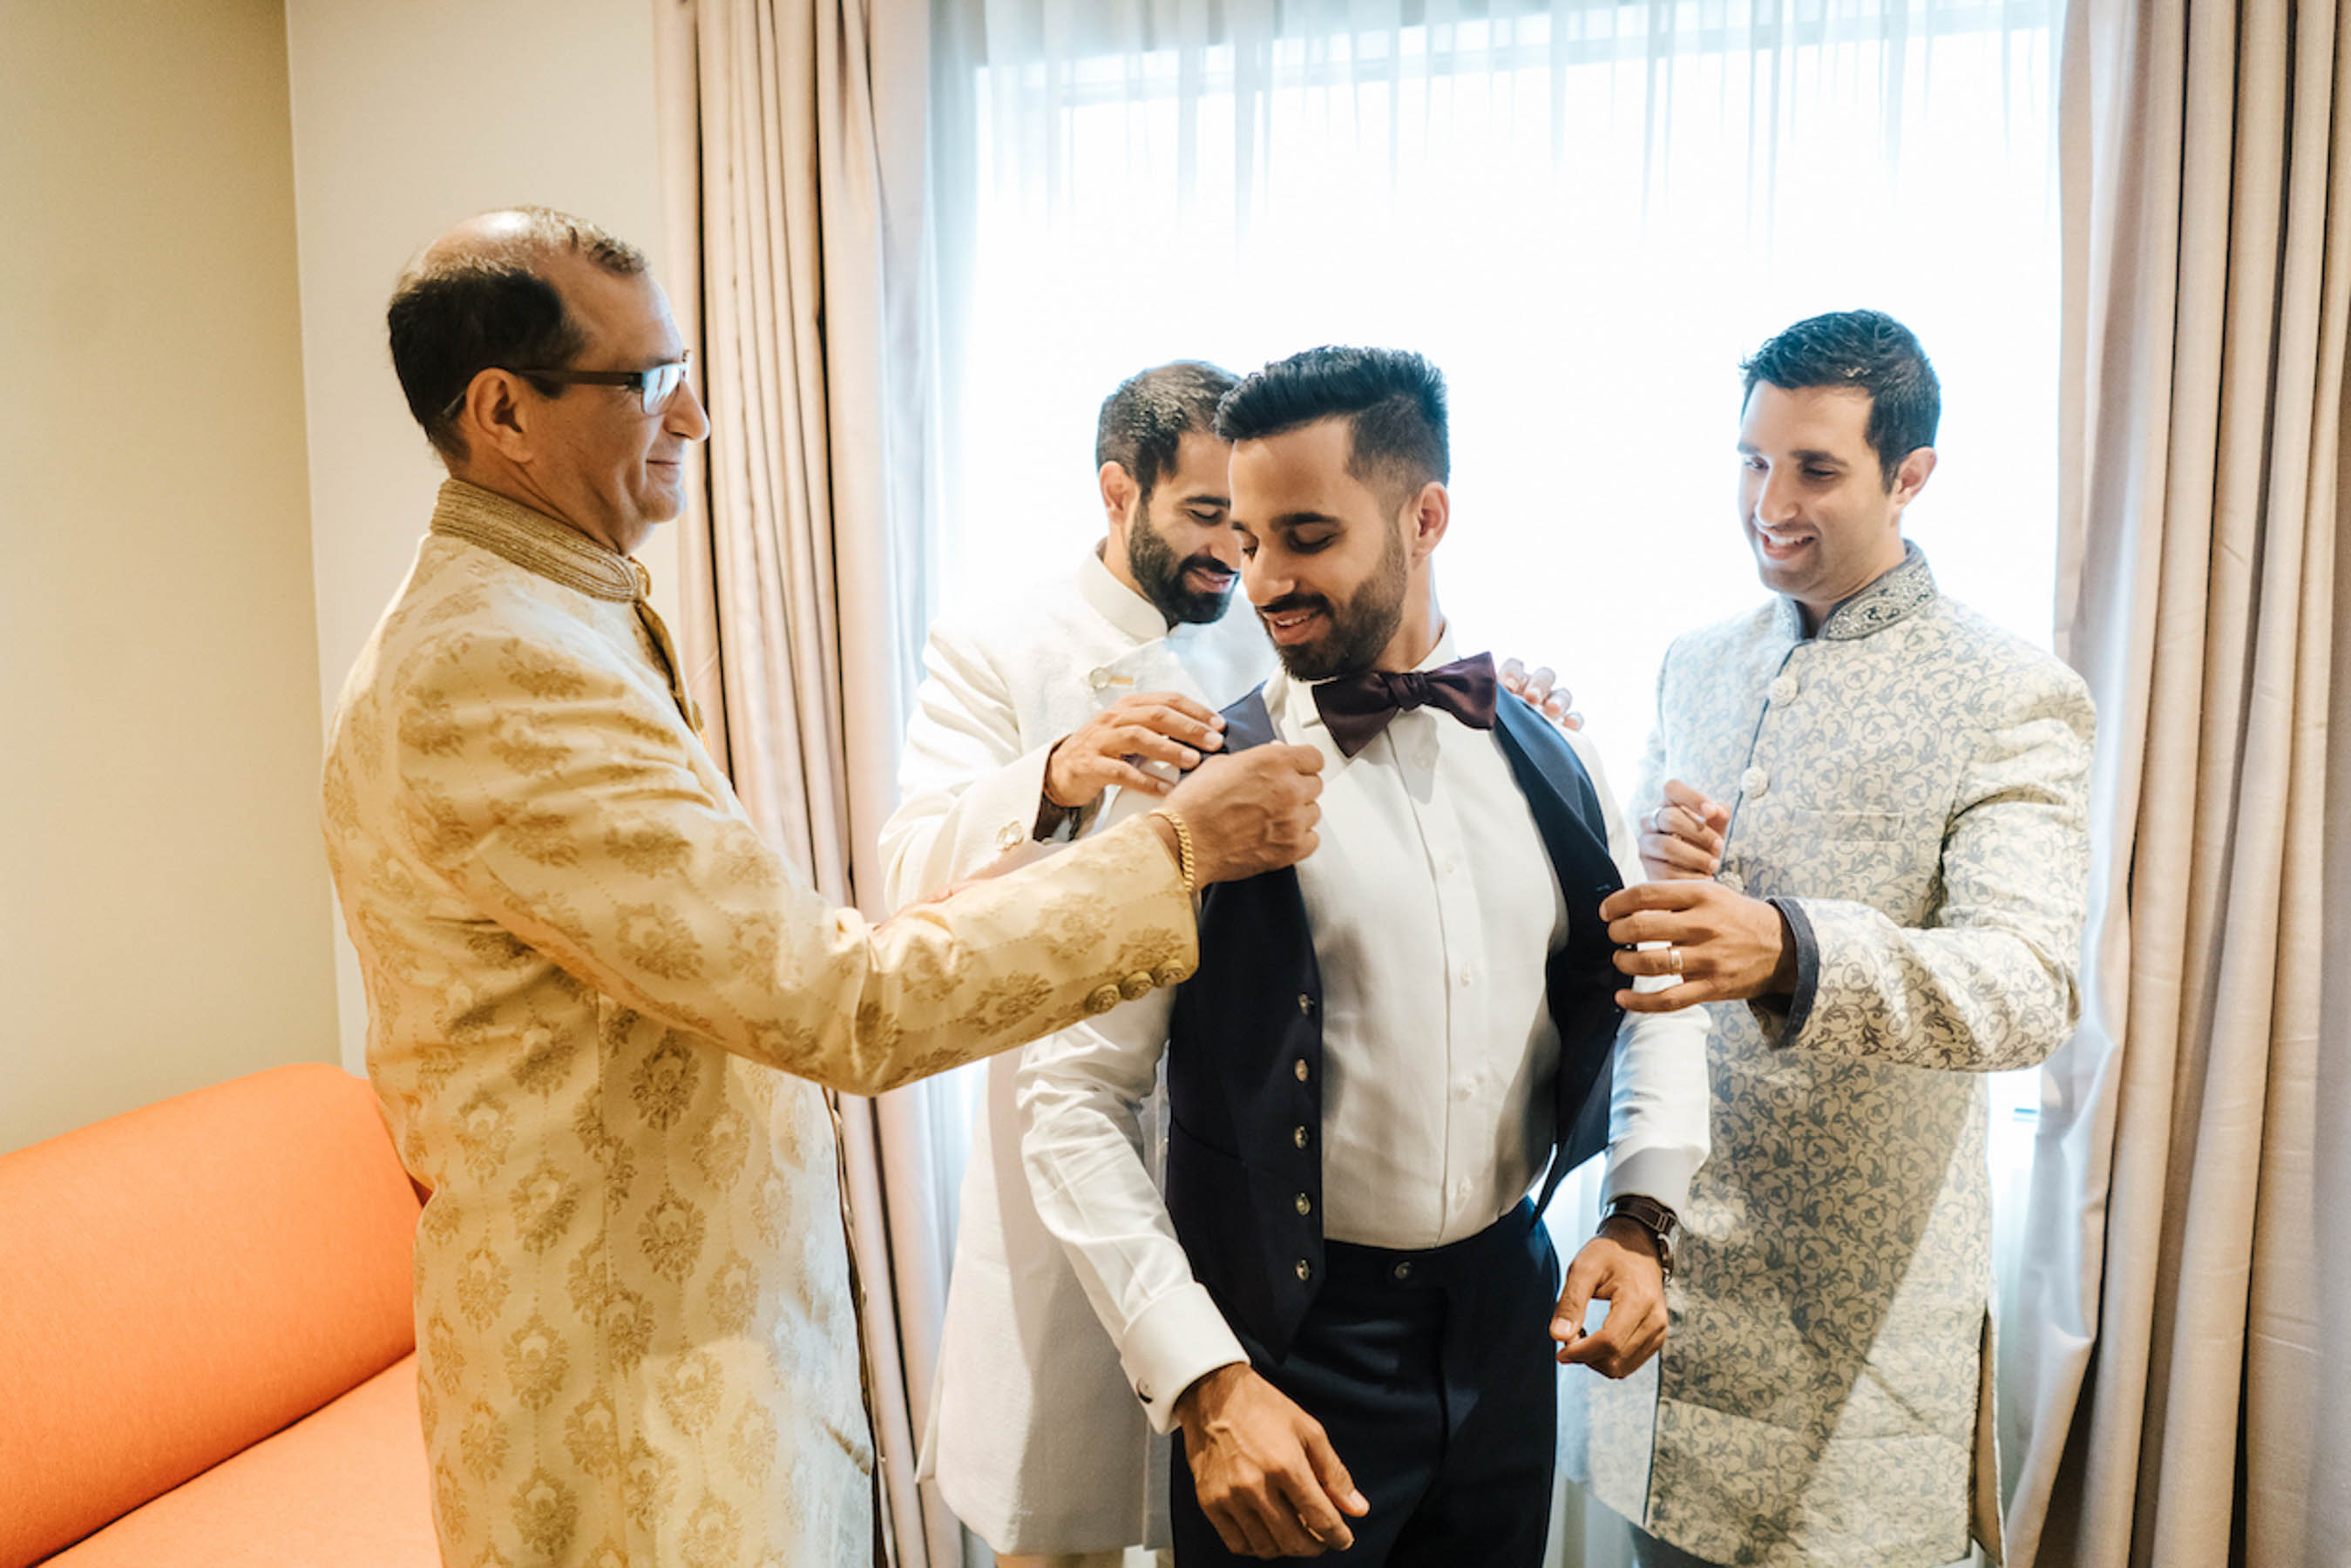 Chetan's wedding reception suit was designed by The Suit Shop. He chose a navy three piece with his initials and our wedding date stitched on the inside of the suit jacket.